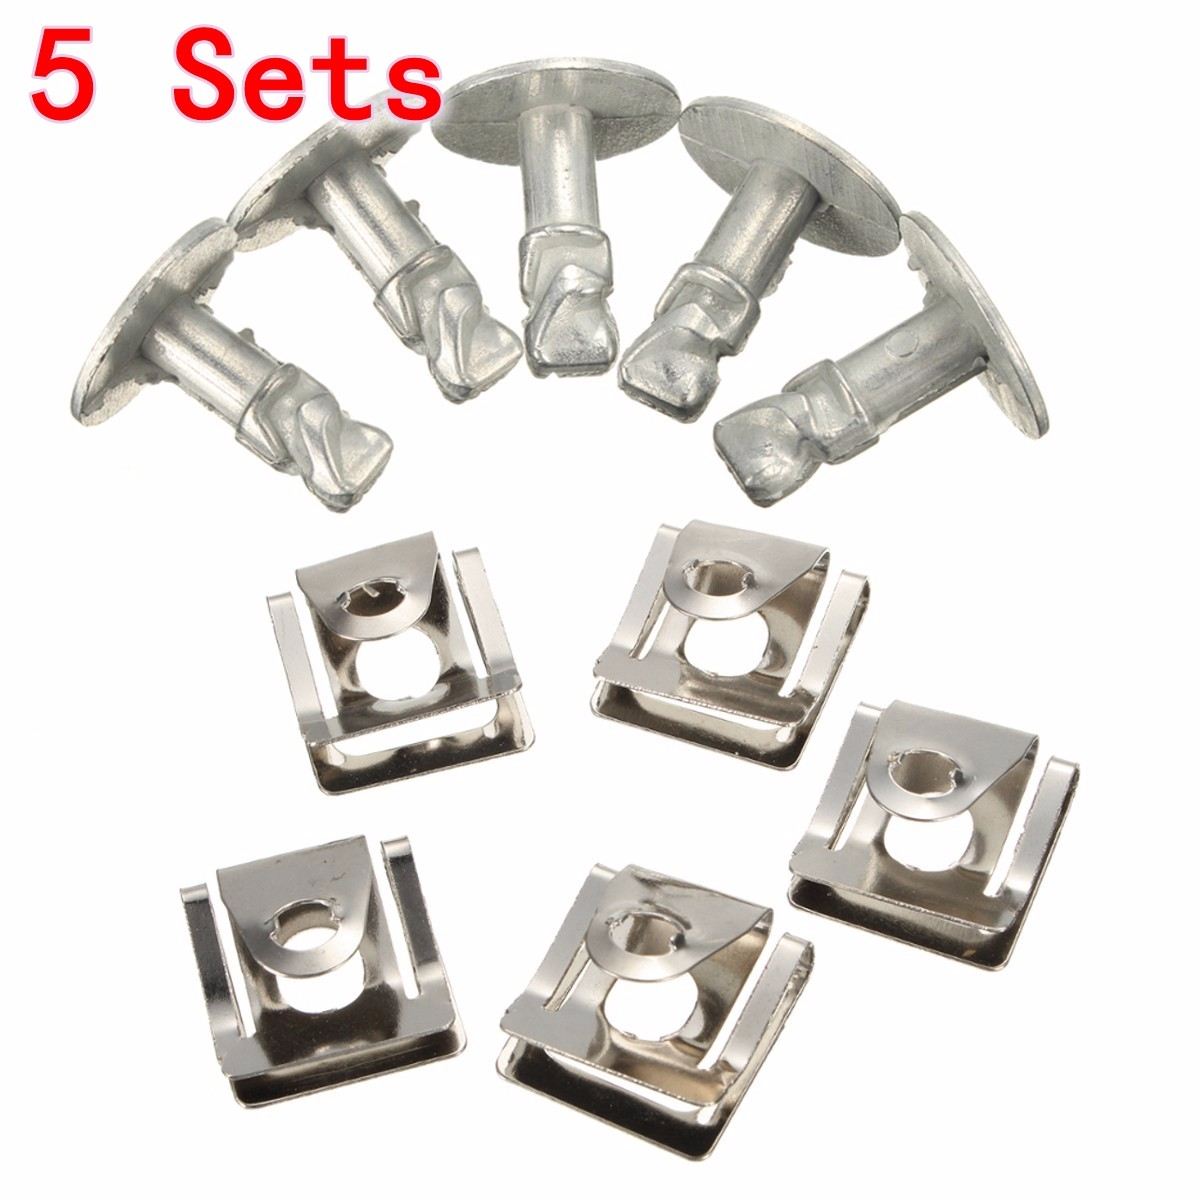 2016 New Under Engine Gearbox Cover Screws & Clips Set for Skoda Superb I /VW /Passat B5 /Audi A4 A6 Models(China (Mainland))